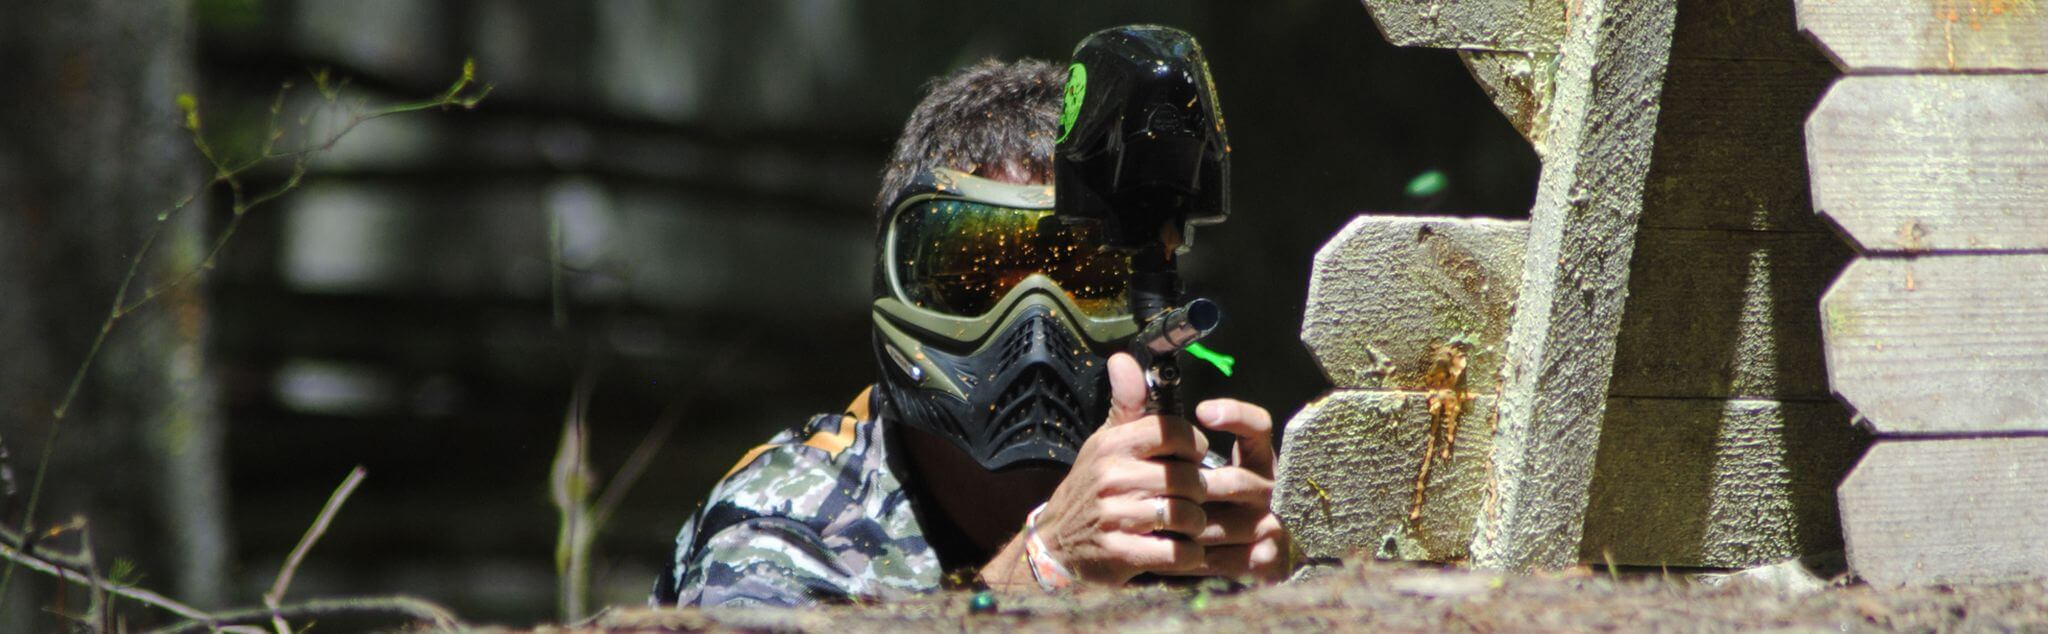 Paintball in Tenerife